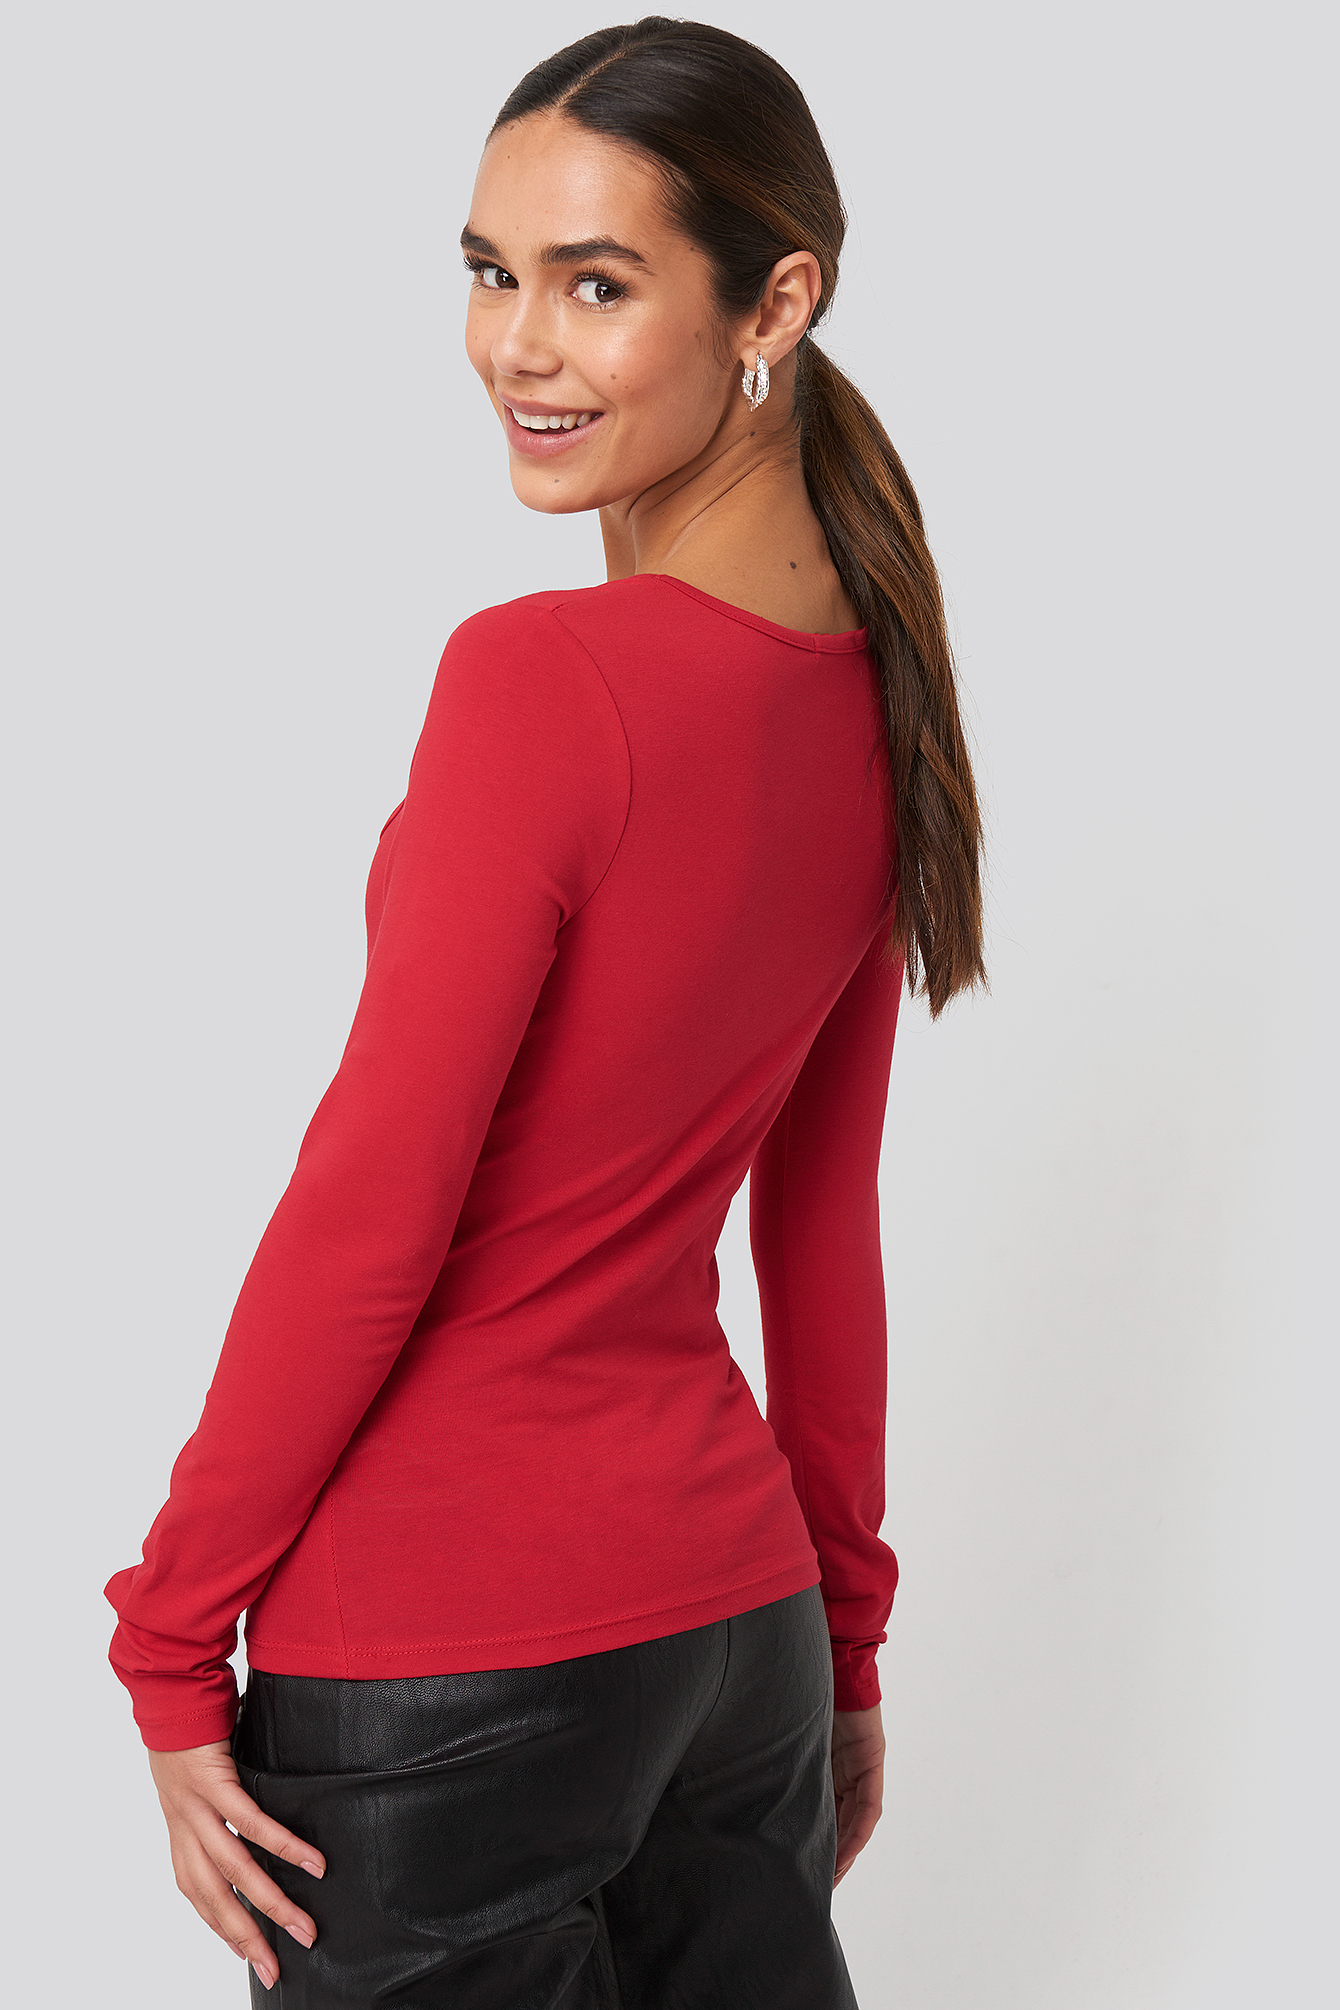 Red Heart Neckline Fitted Top